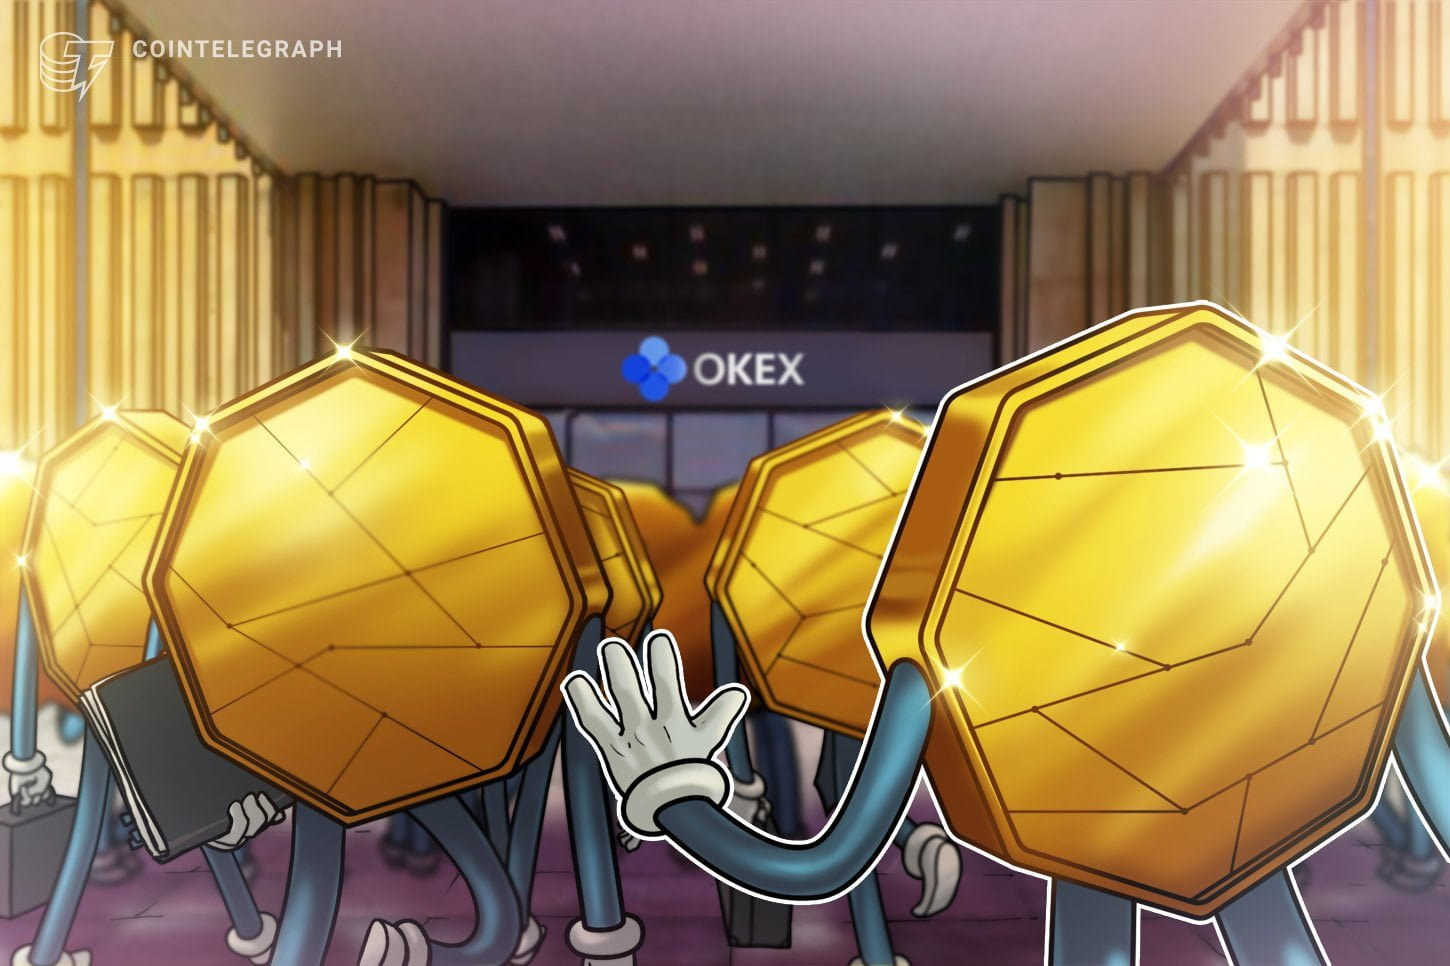 OKEx continues to buy back OKB tokens